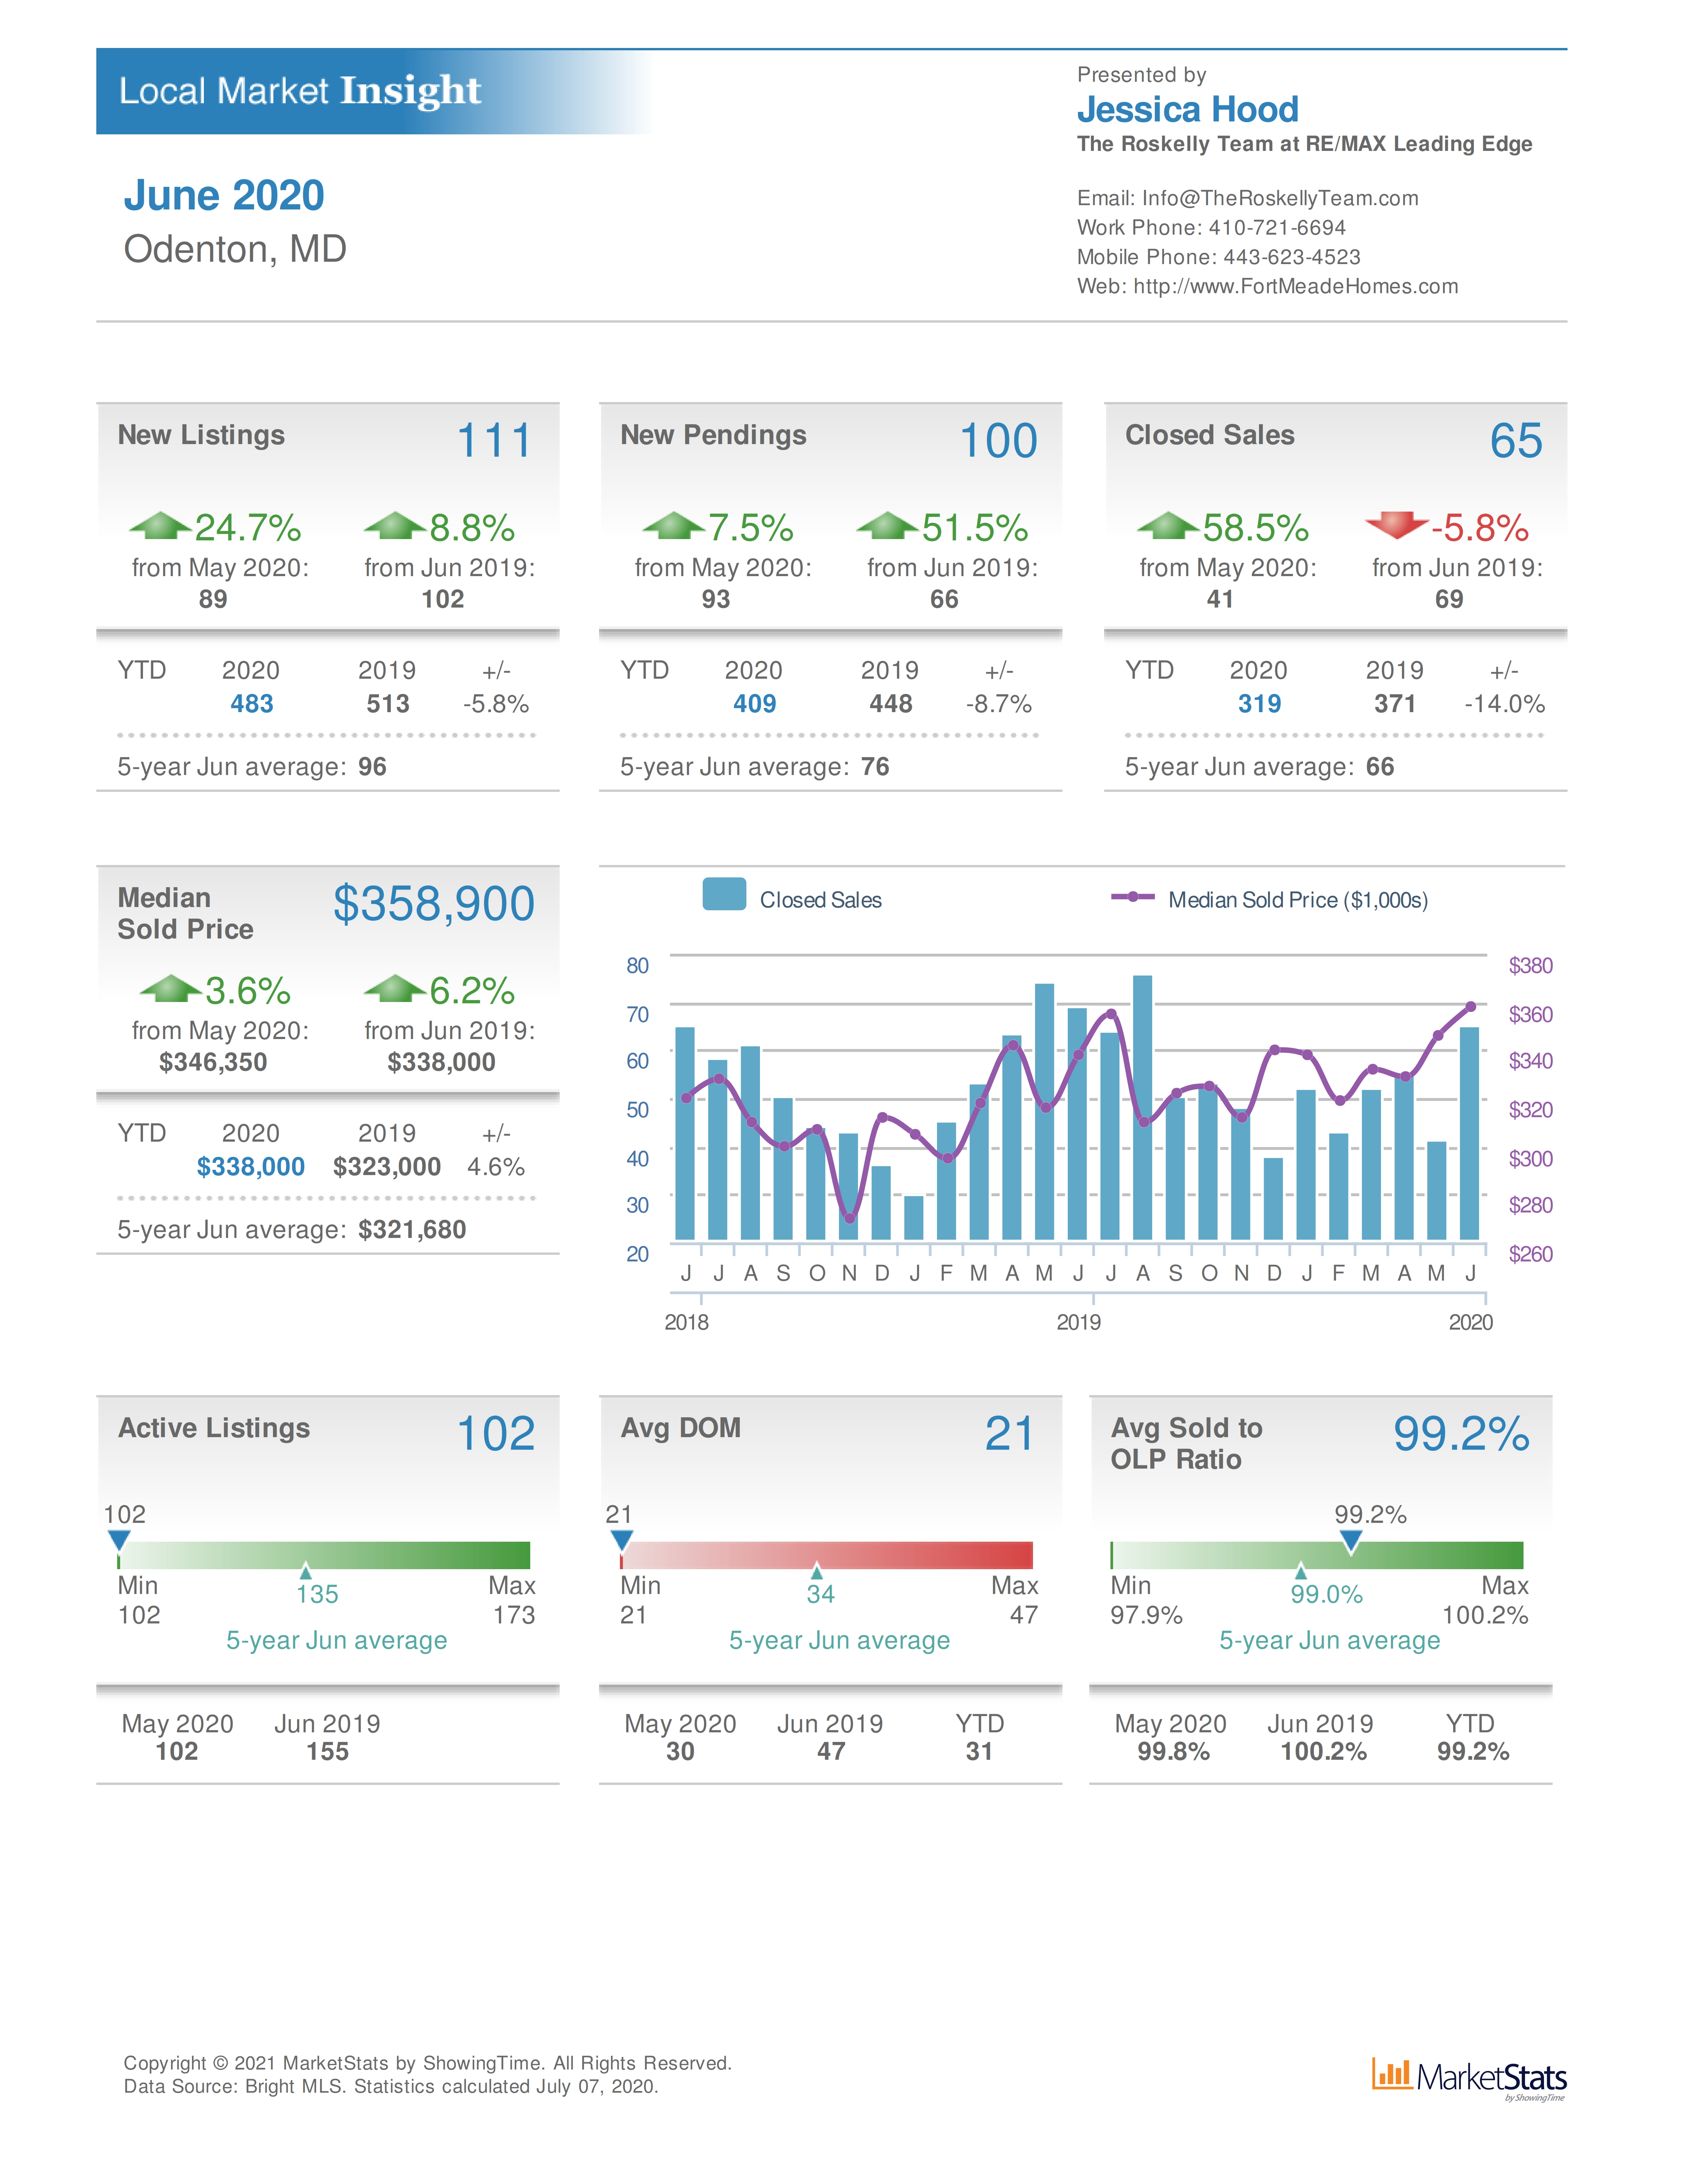 Odenton MD home sales and real estate values June 2020